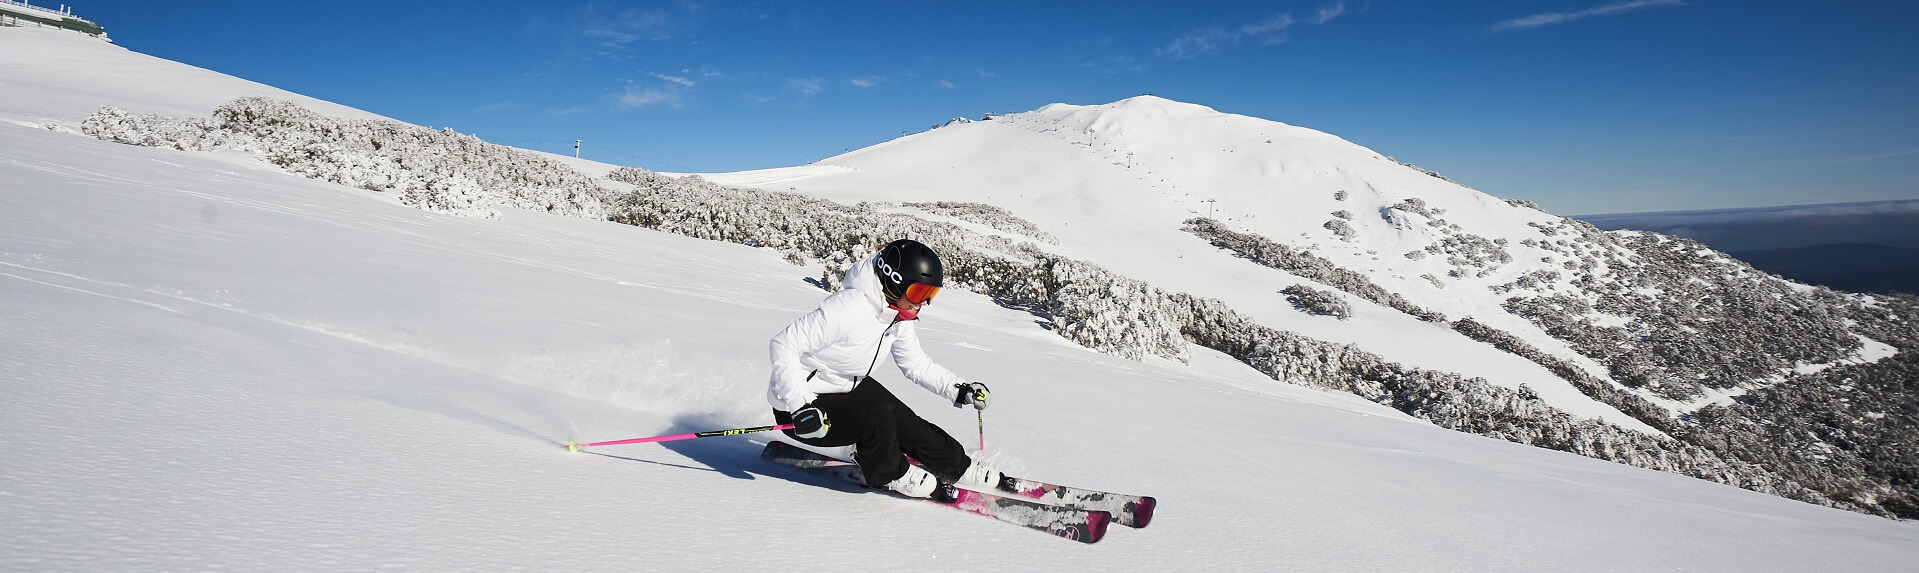 Mount Buller Snow Tour - Return a Different Day